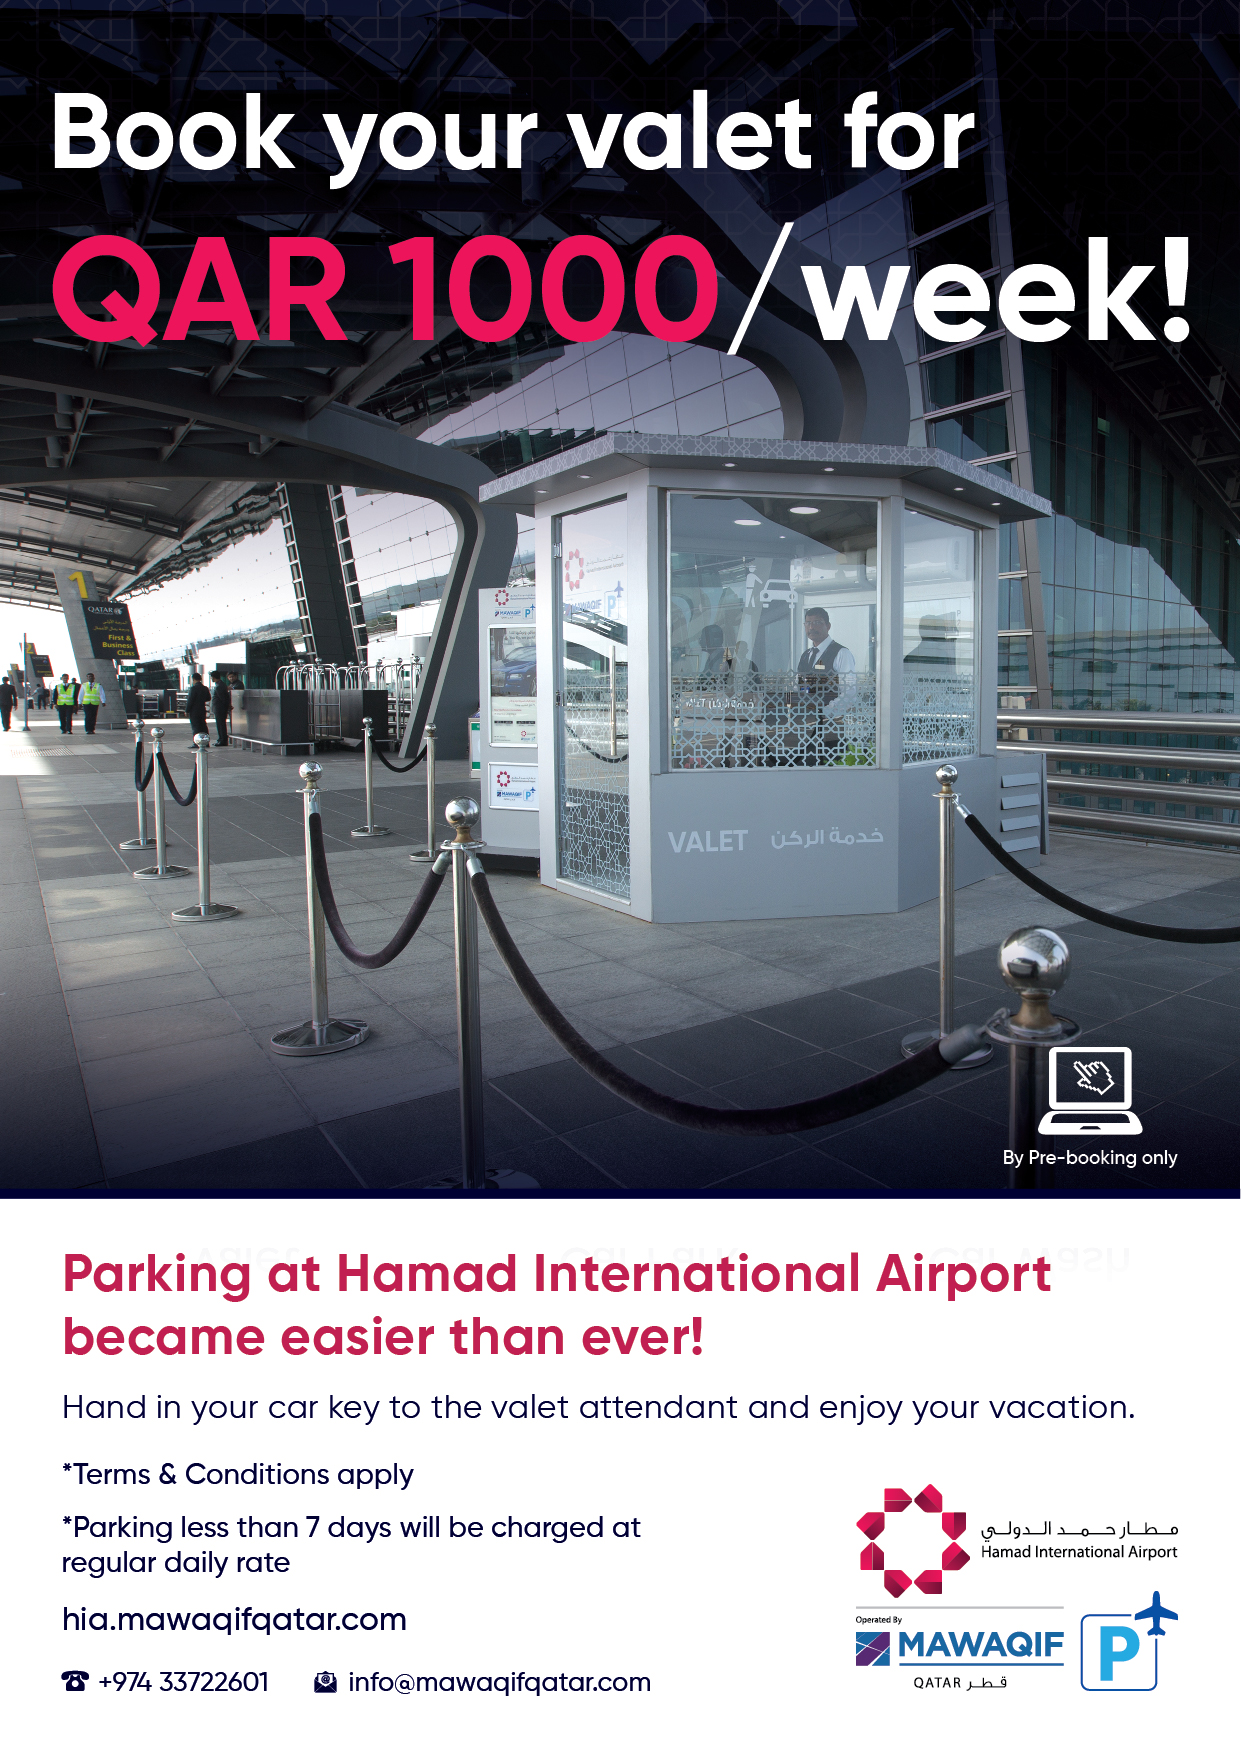 Book your valet for QAR1000/ week. hia.mawaqifqatar.com